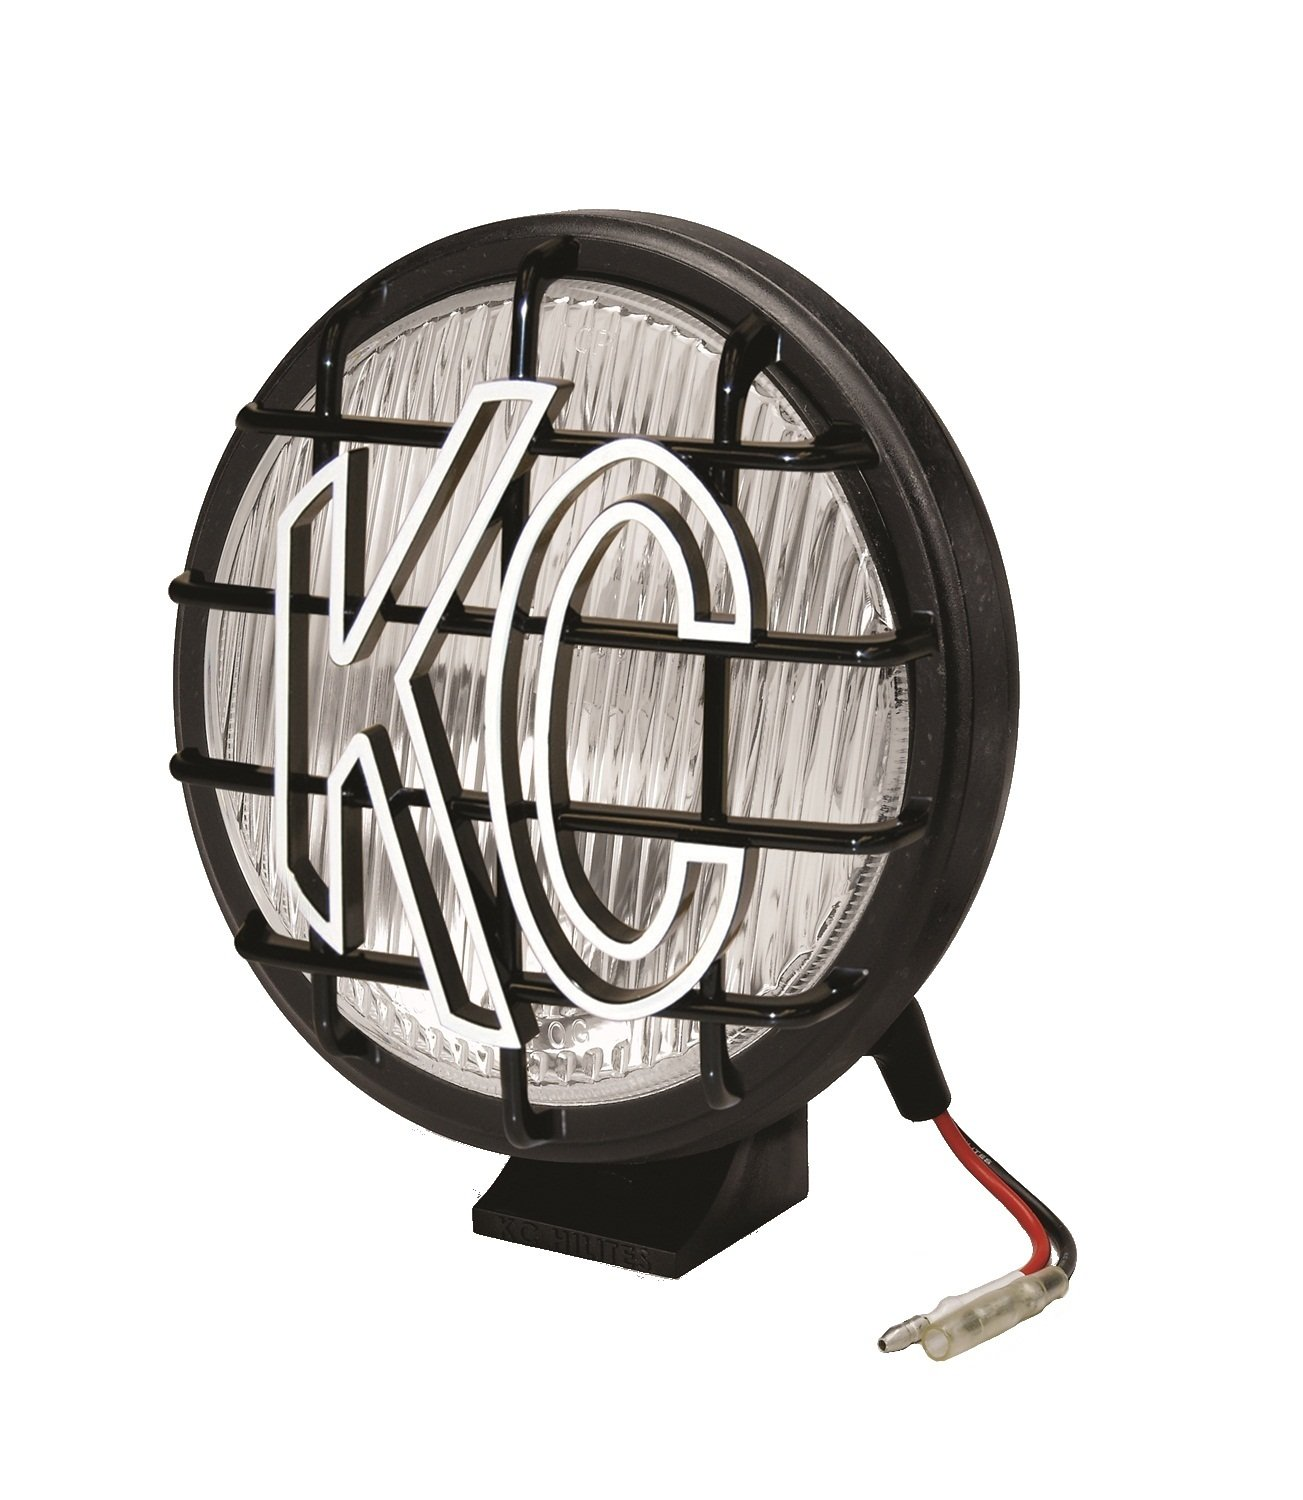 KC HiLiTES 1152 Apollo Pro 6'' 100w Single Fog Light with Integrated Stone Guard